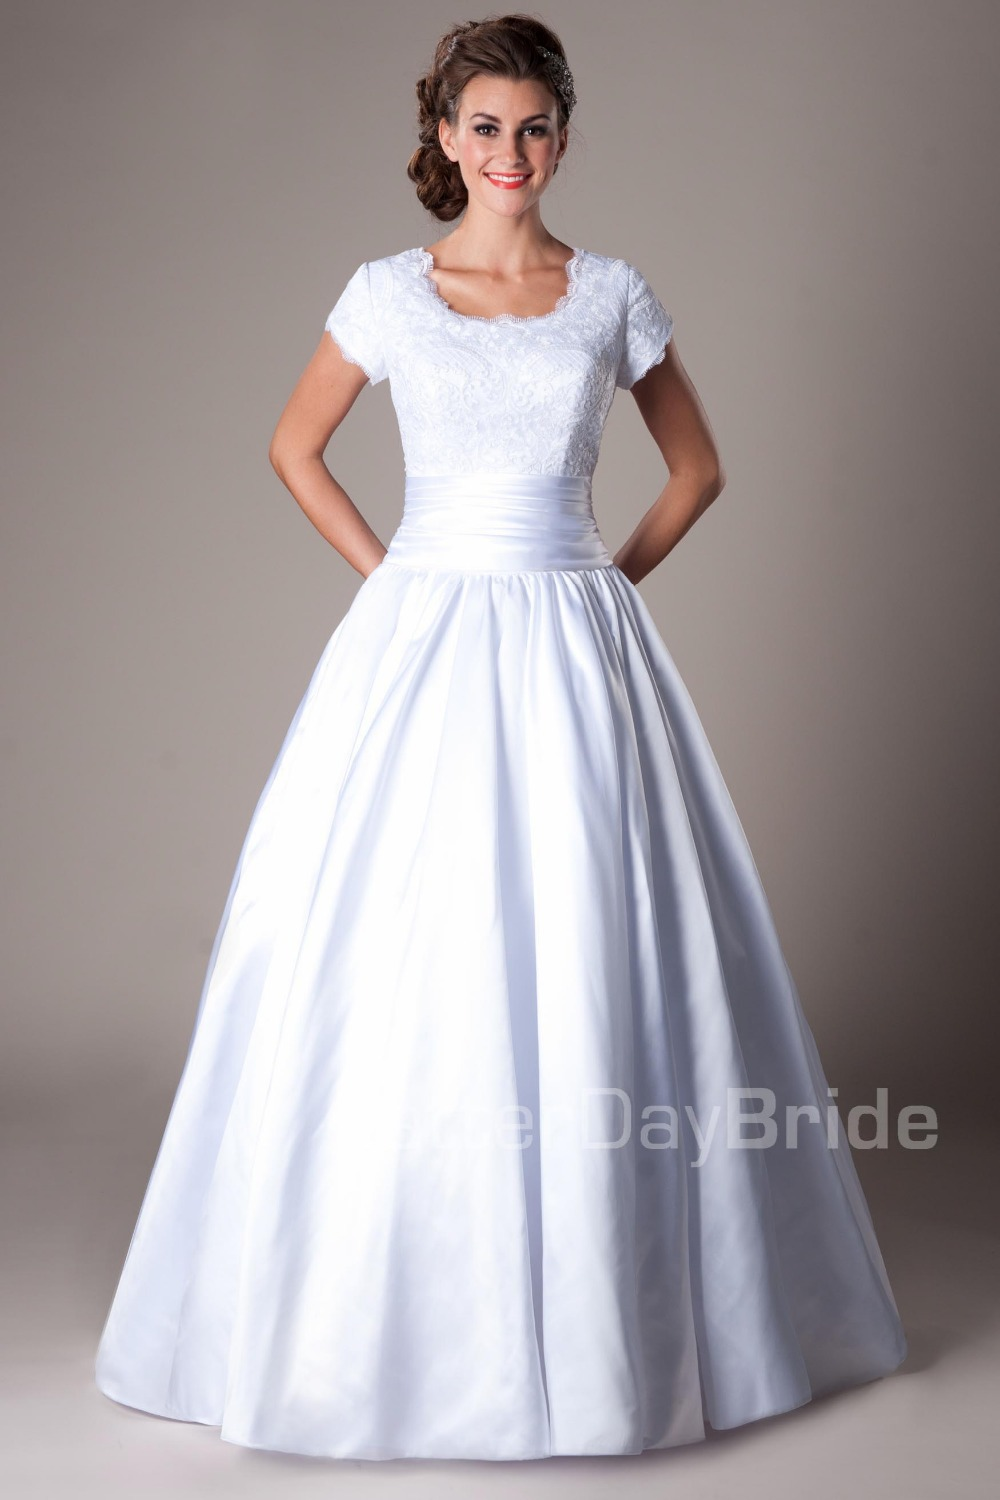 mormon wedding dresses 2016 women modest wedding gown with sleeves white 6019